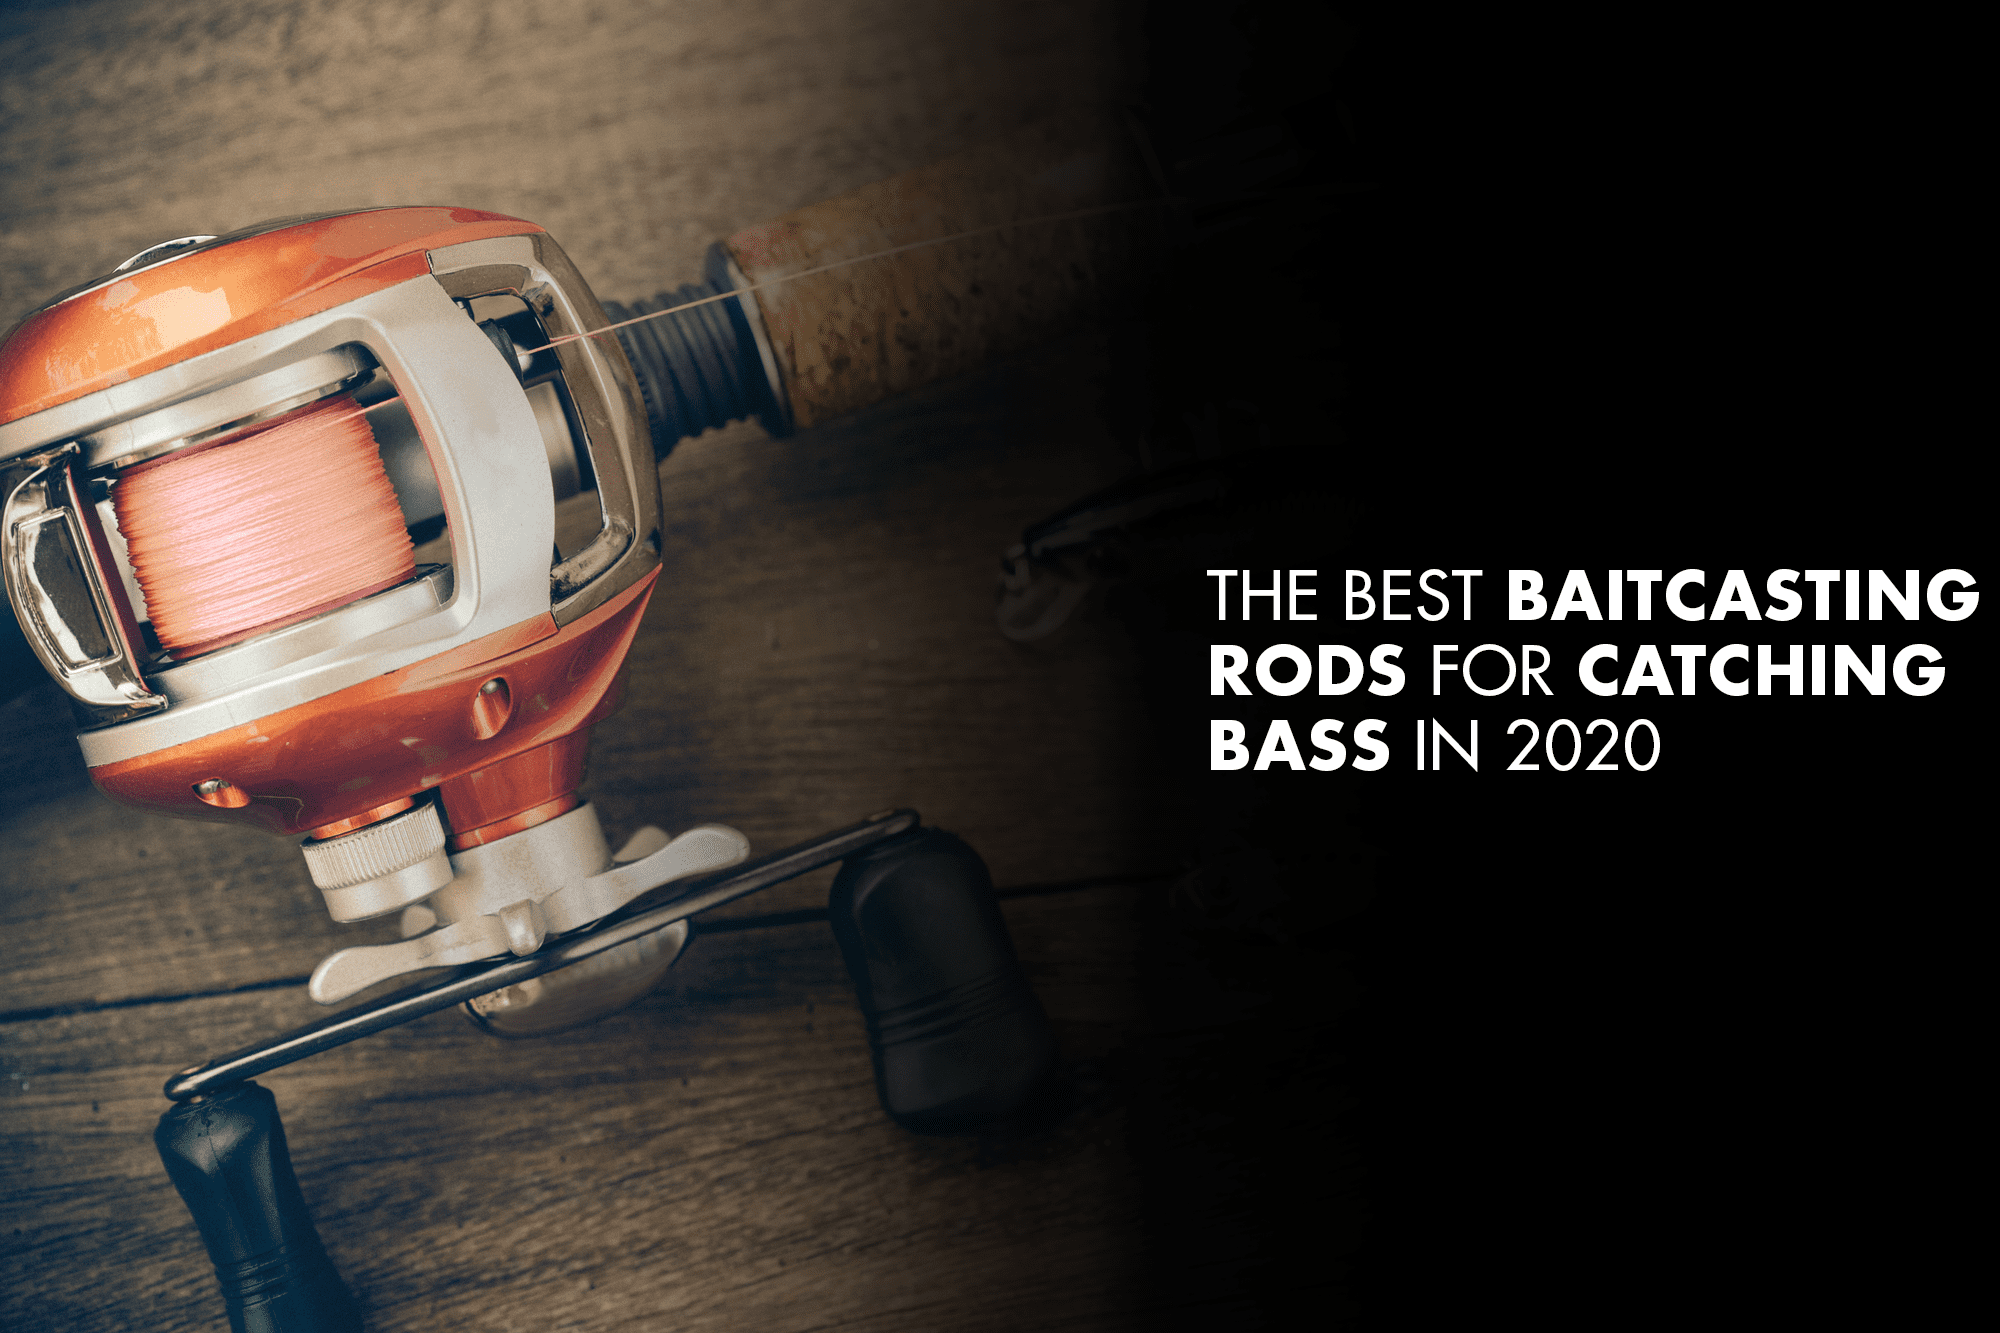 The Best Baitcasting Rods for Catching Bass in 2020